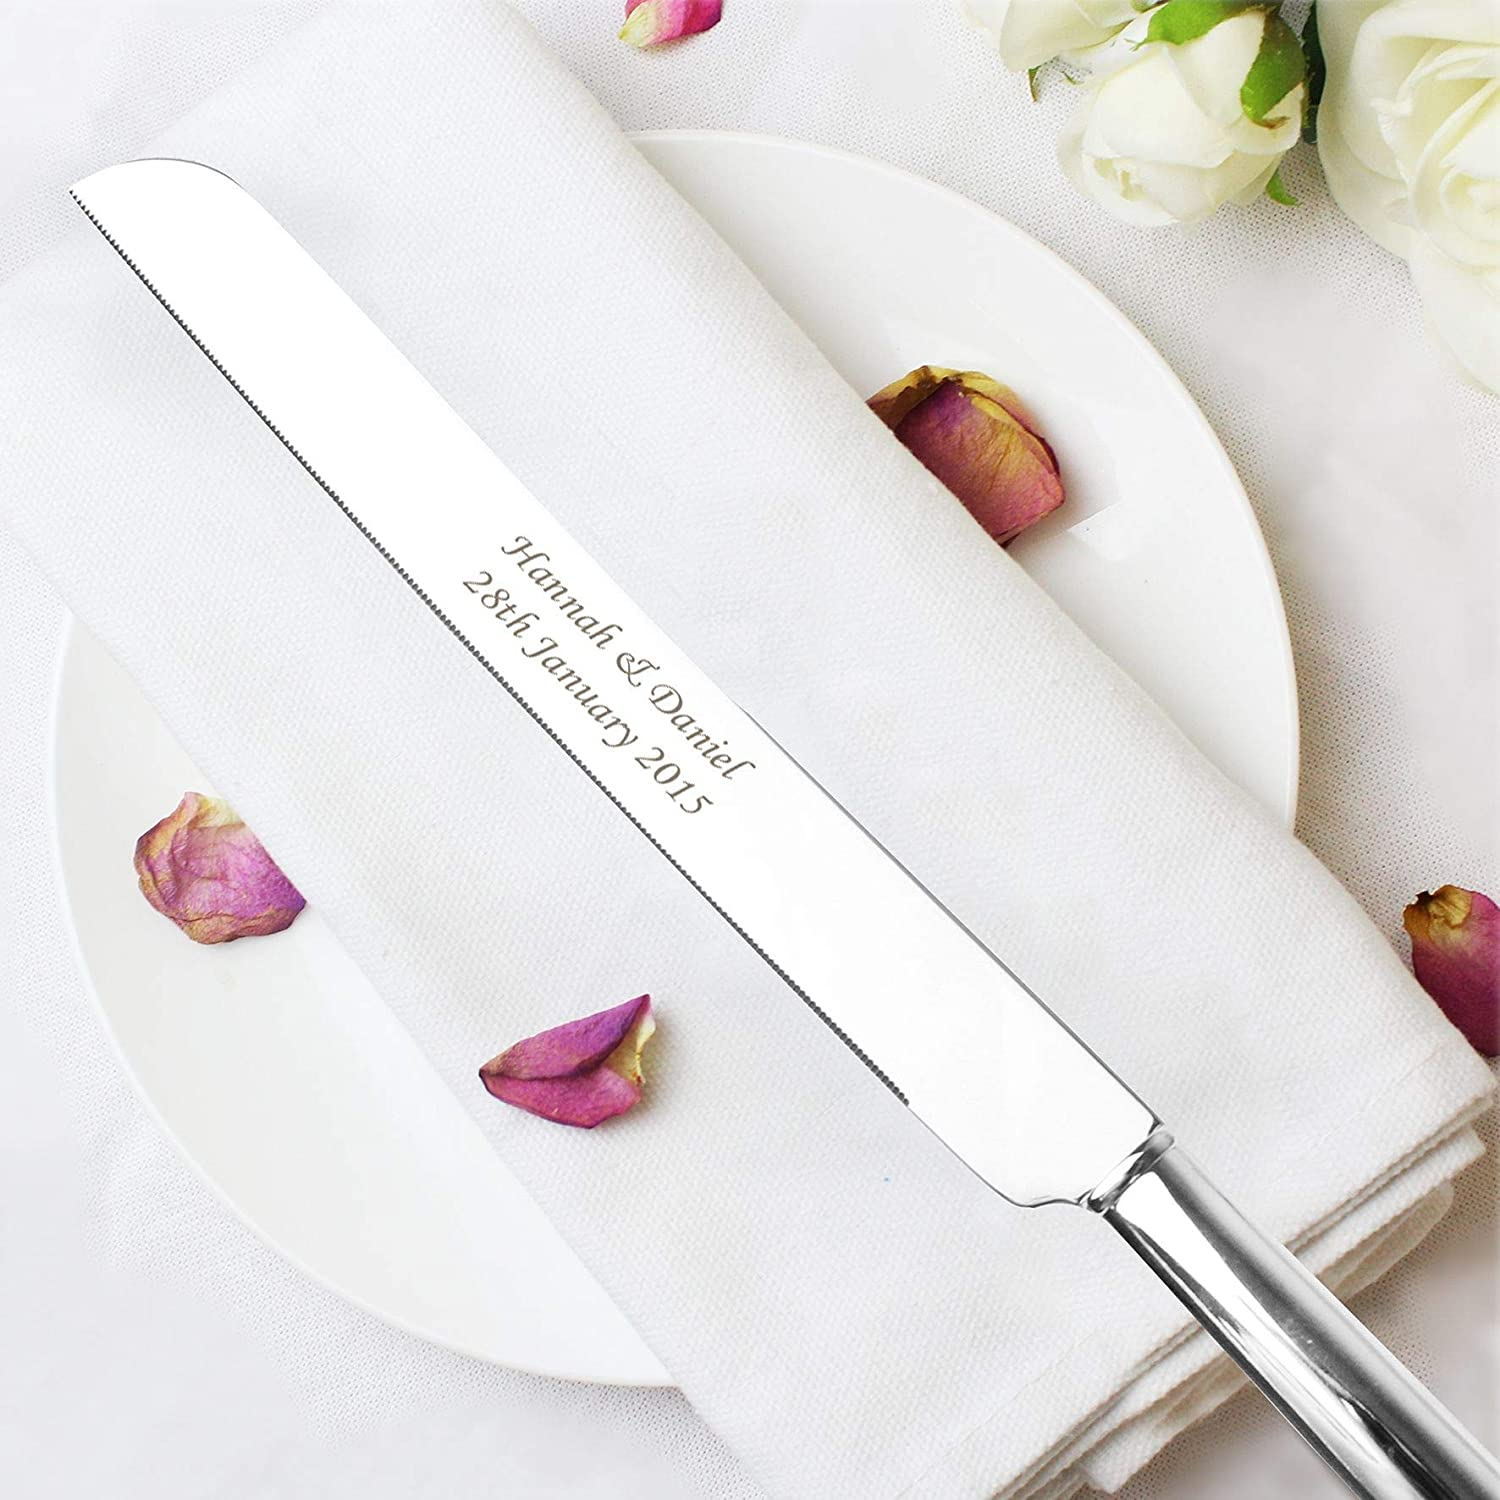 Personalised Silver Plated Heart & Crystals Cake Knife FREE ENGRAVING Widdop WY108